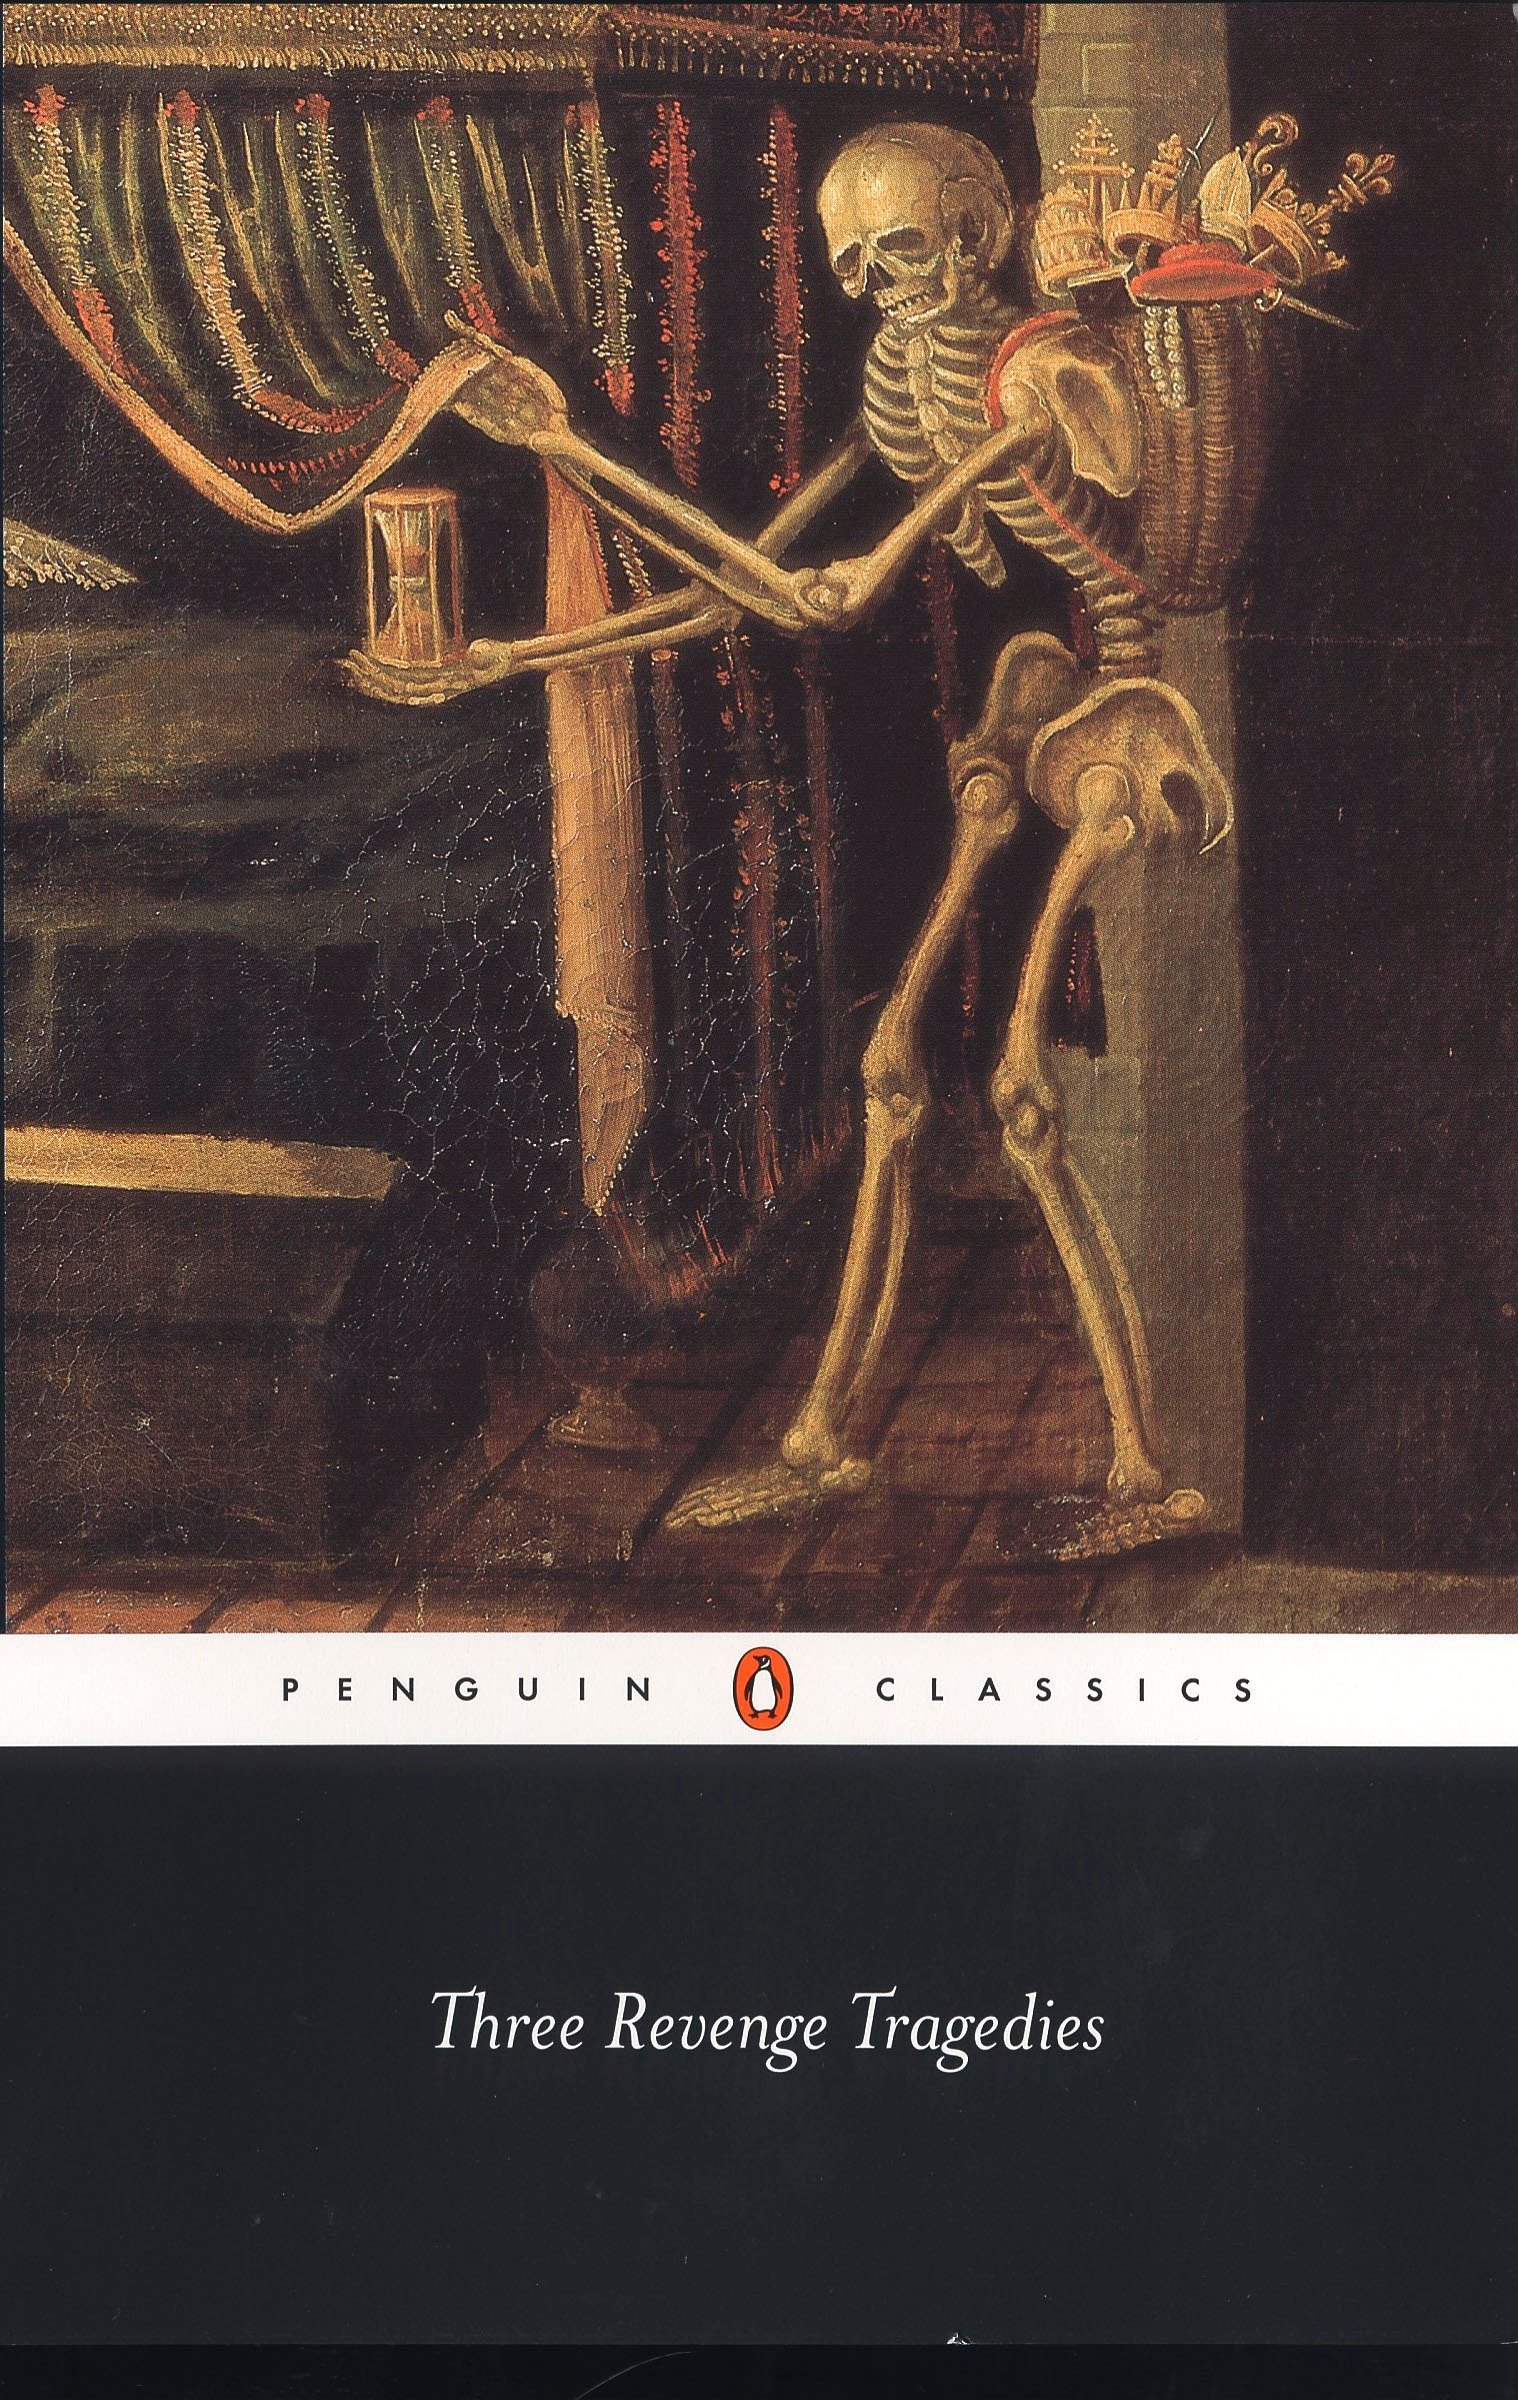 Three Revenge Tragedies: The Revenger's Tragedy; The White Devil; The Changeling (Penguin Classics) Paperback – April 26, 2005 Cyril Tourneur John Webster Thomas Middleton Gamini Salgado